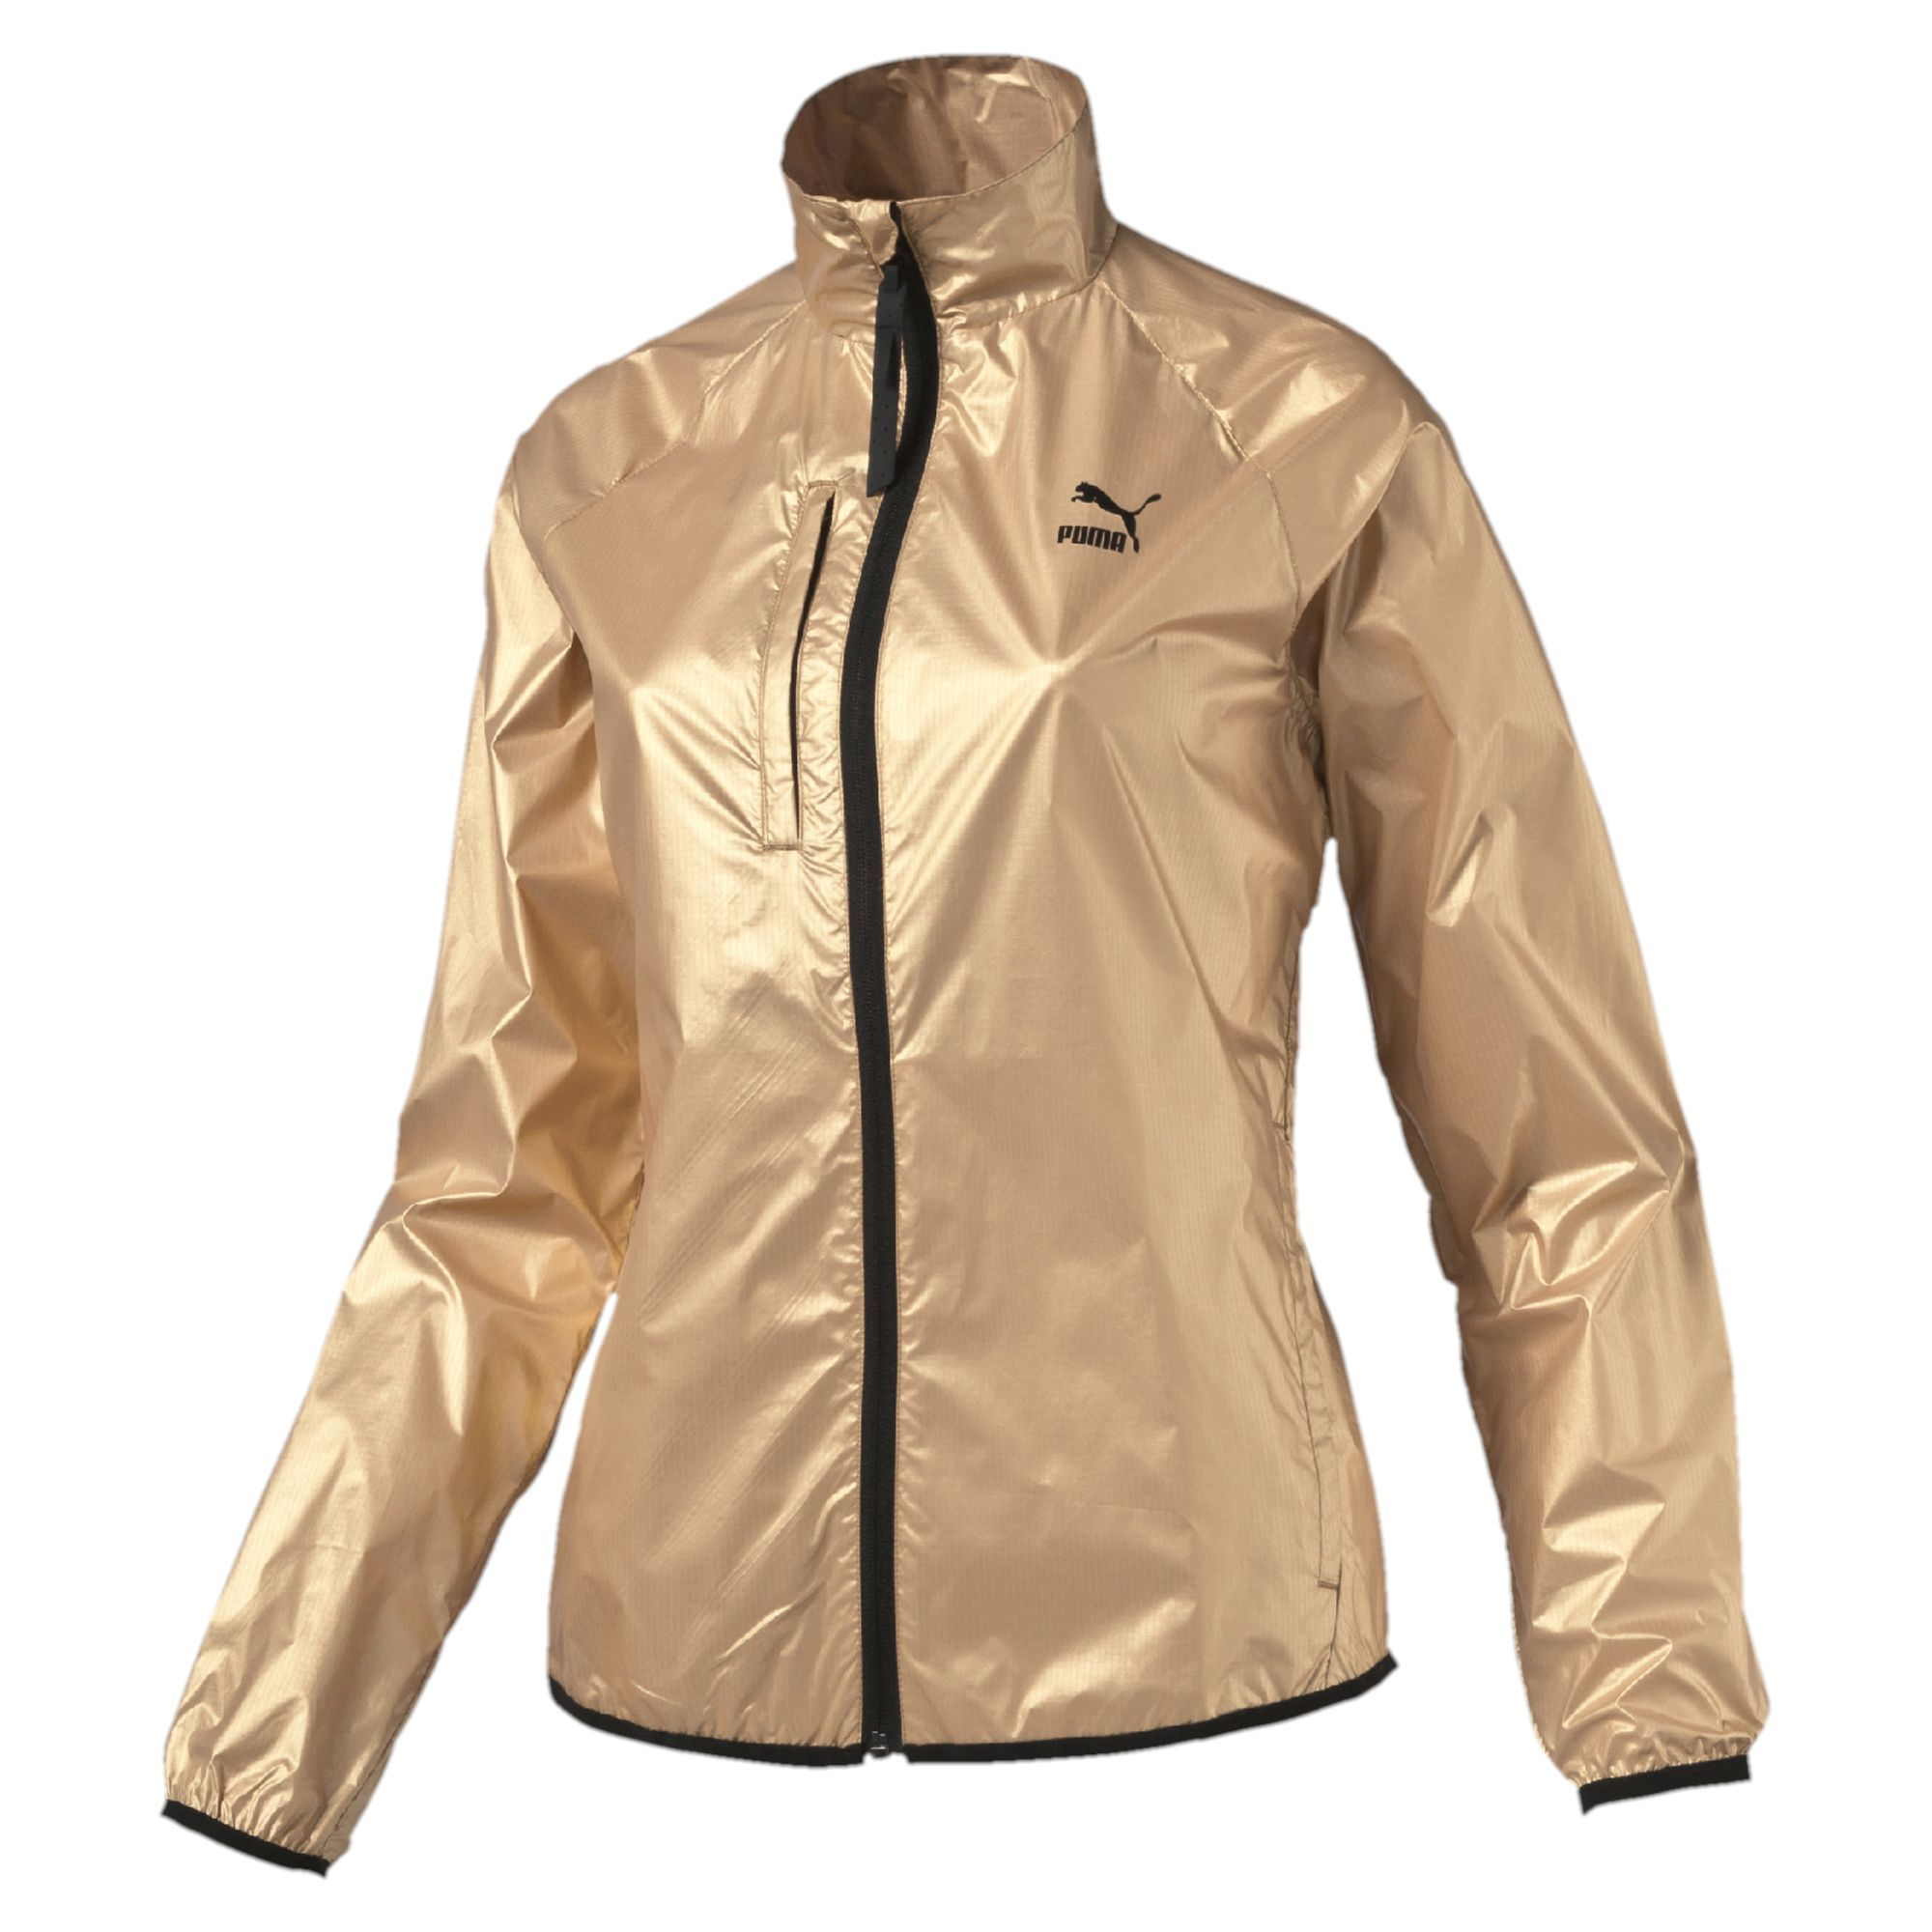 Evolution Gold Windrunner Jacket